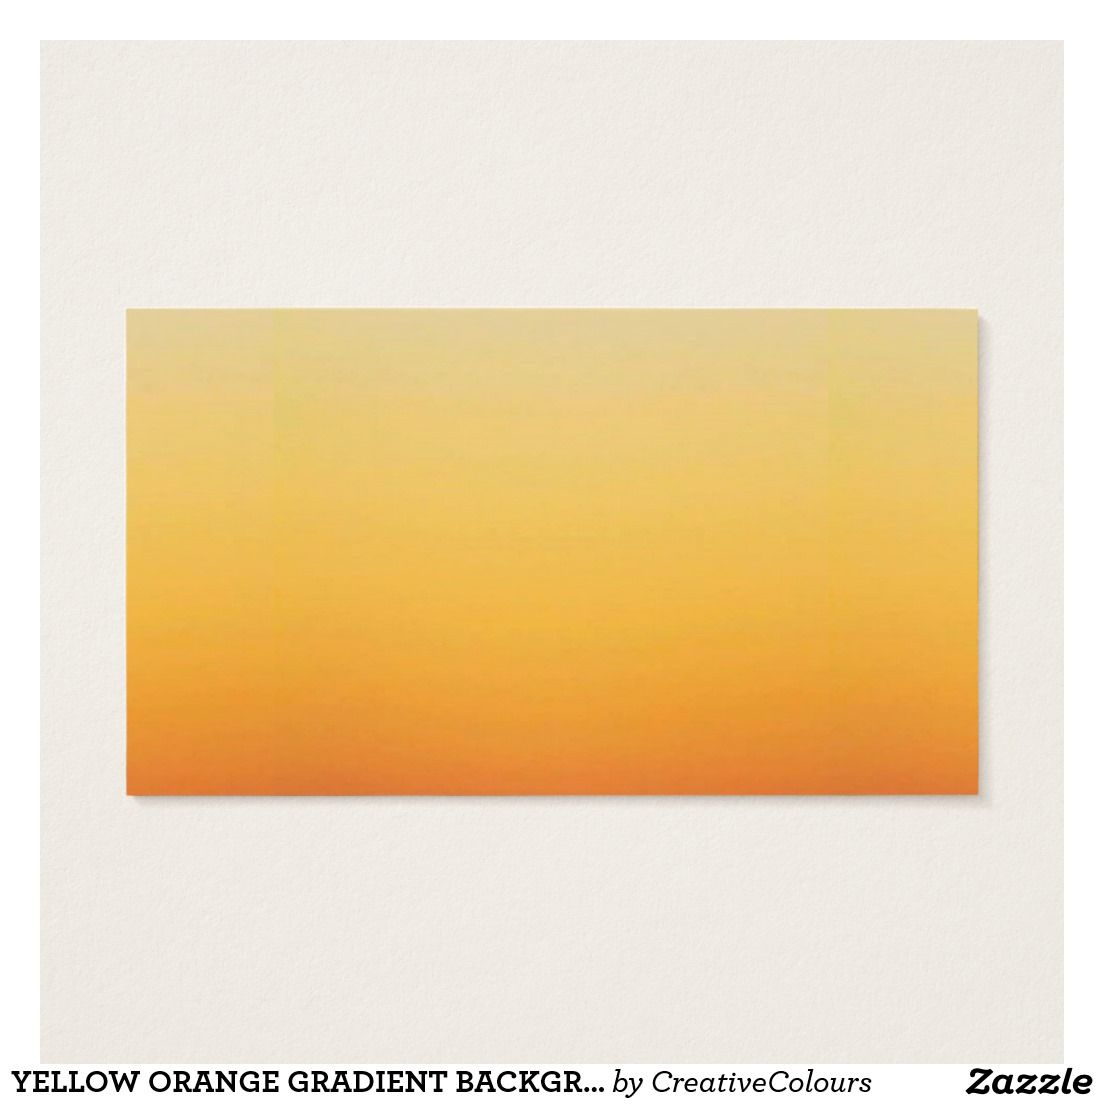 Yellow Orange Gradient Background Template Customi Zazzle Com